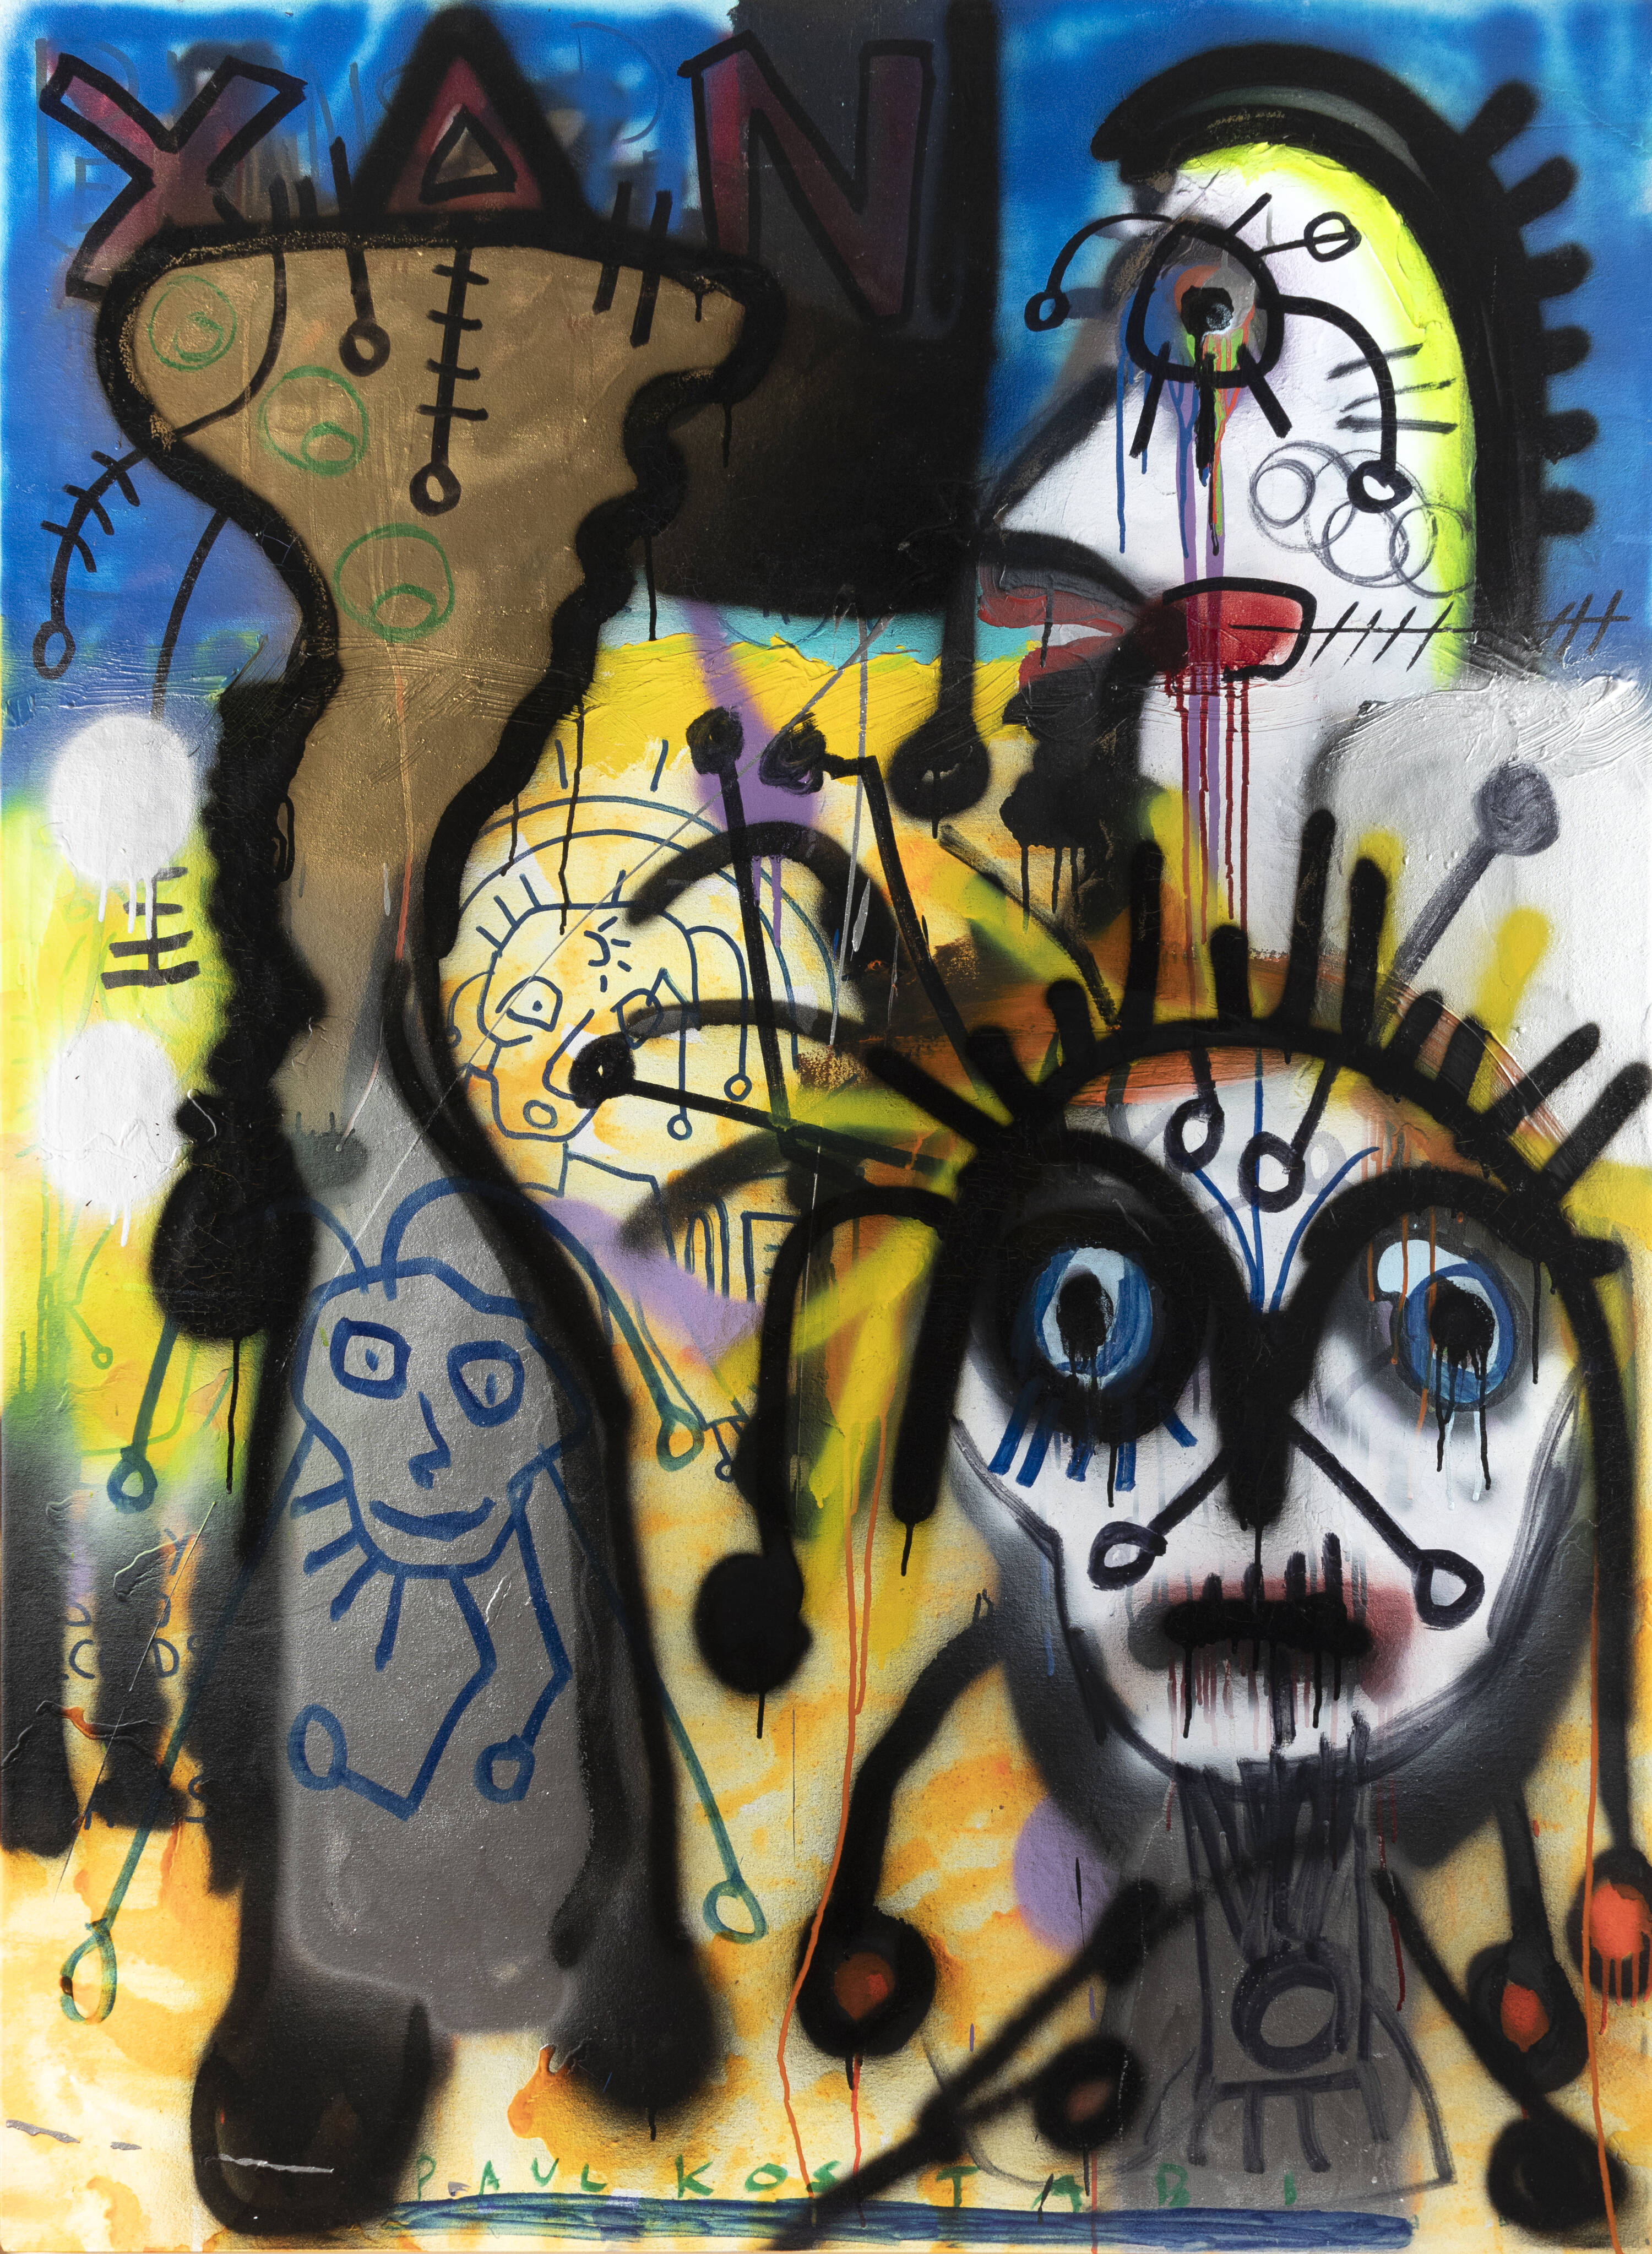 PAUL KOSTABI - 'Tapes and tapes' 2006